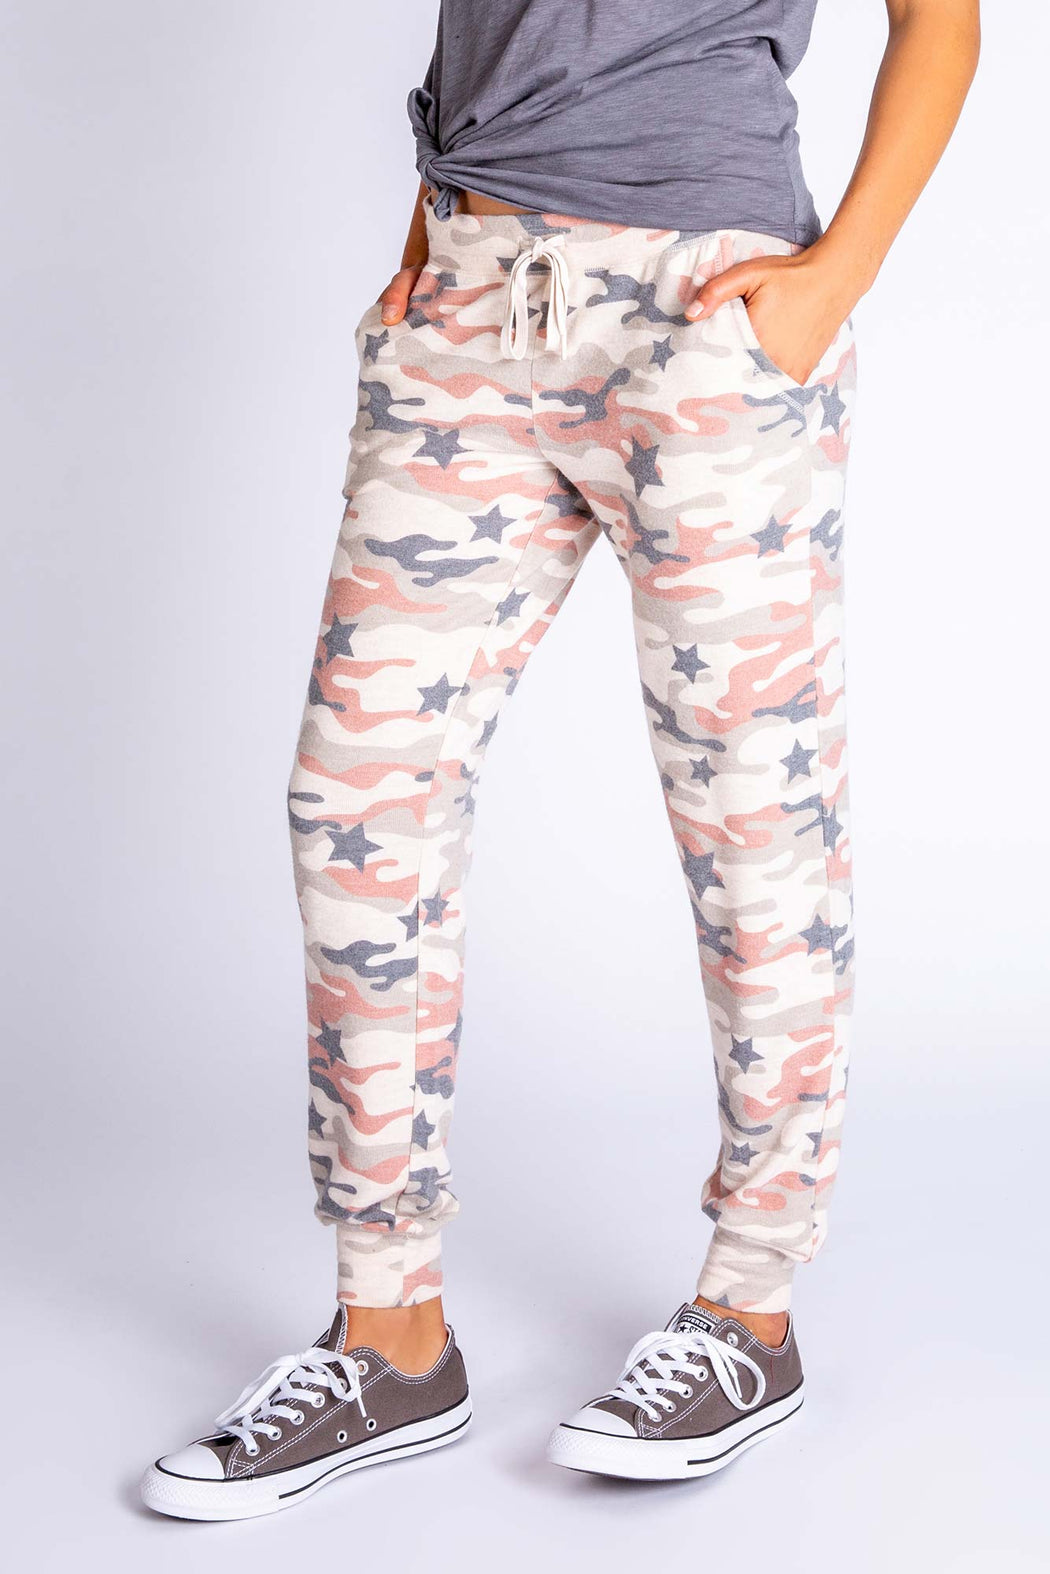 PJ-Salvage-Follow-the-Stars-Camo-Banded-Pant-Oatmeal-1